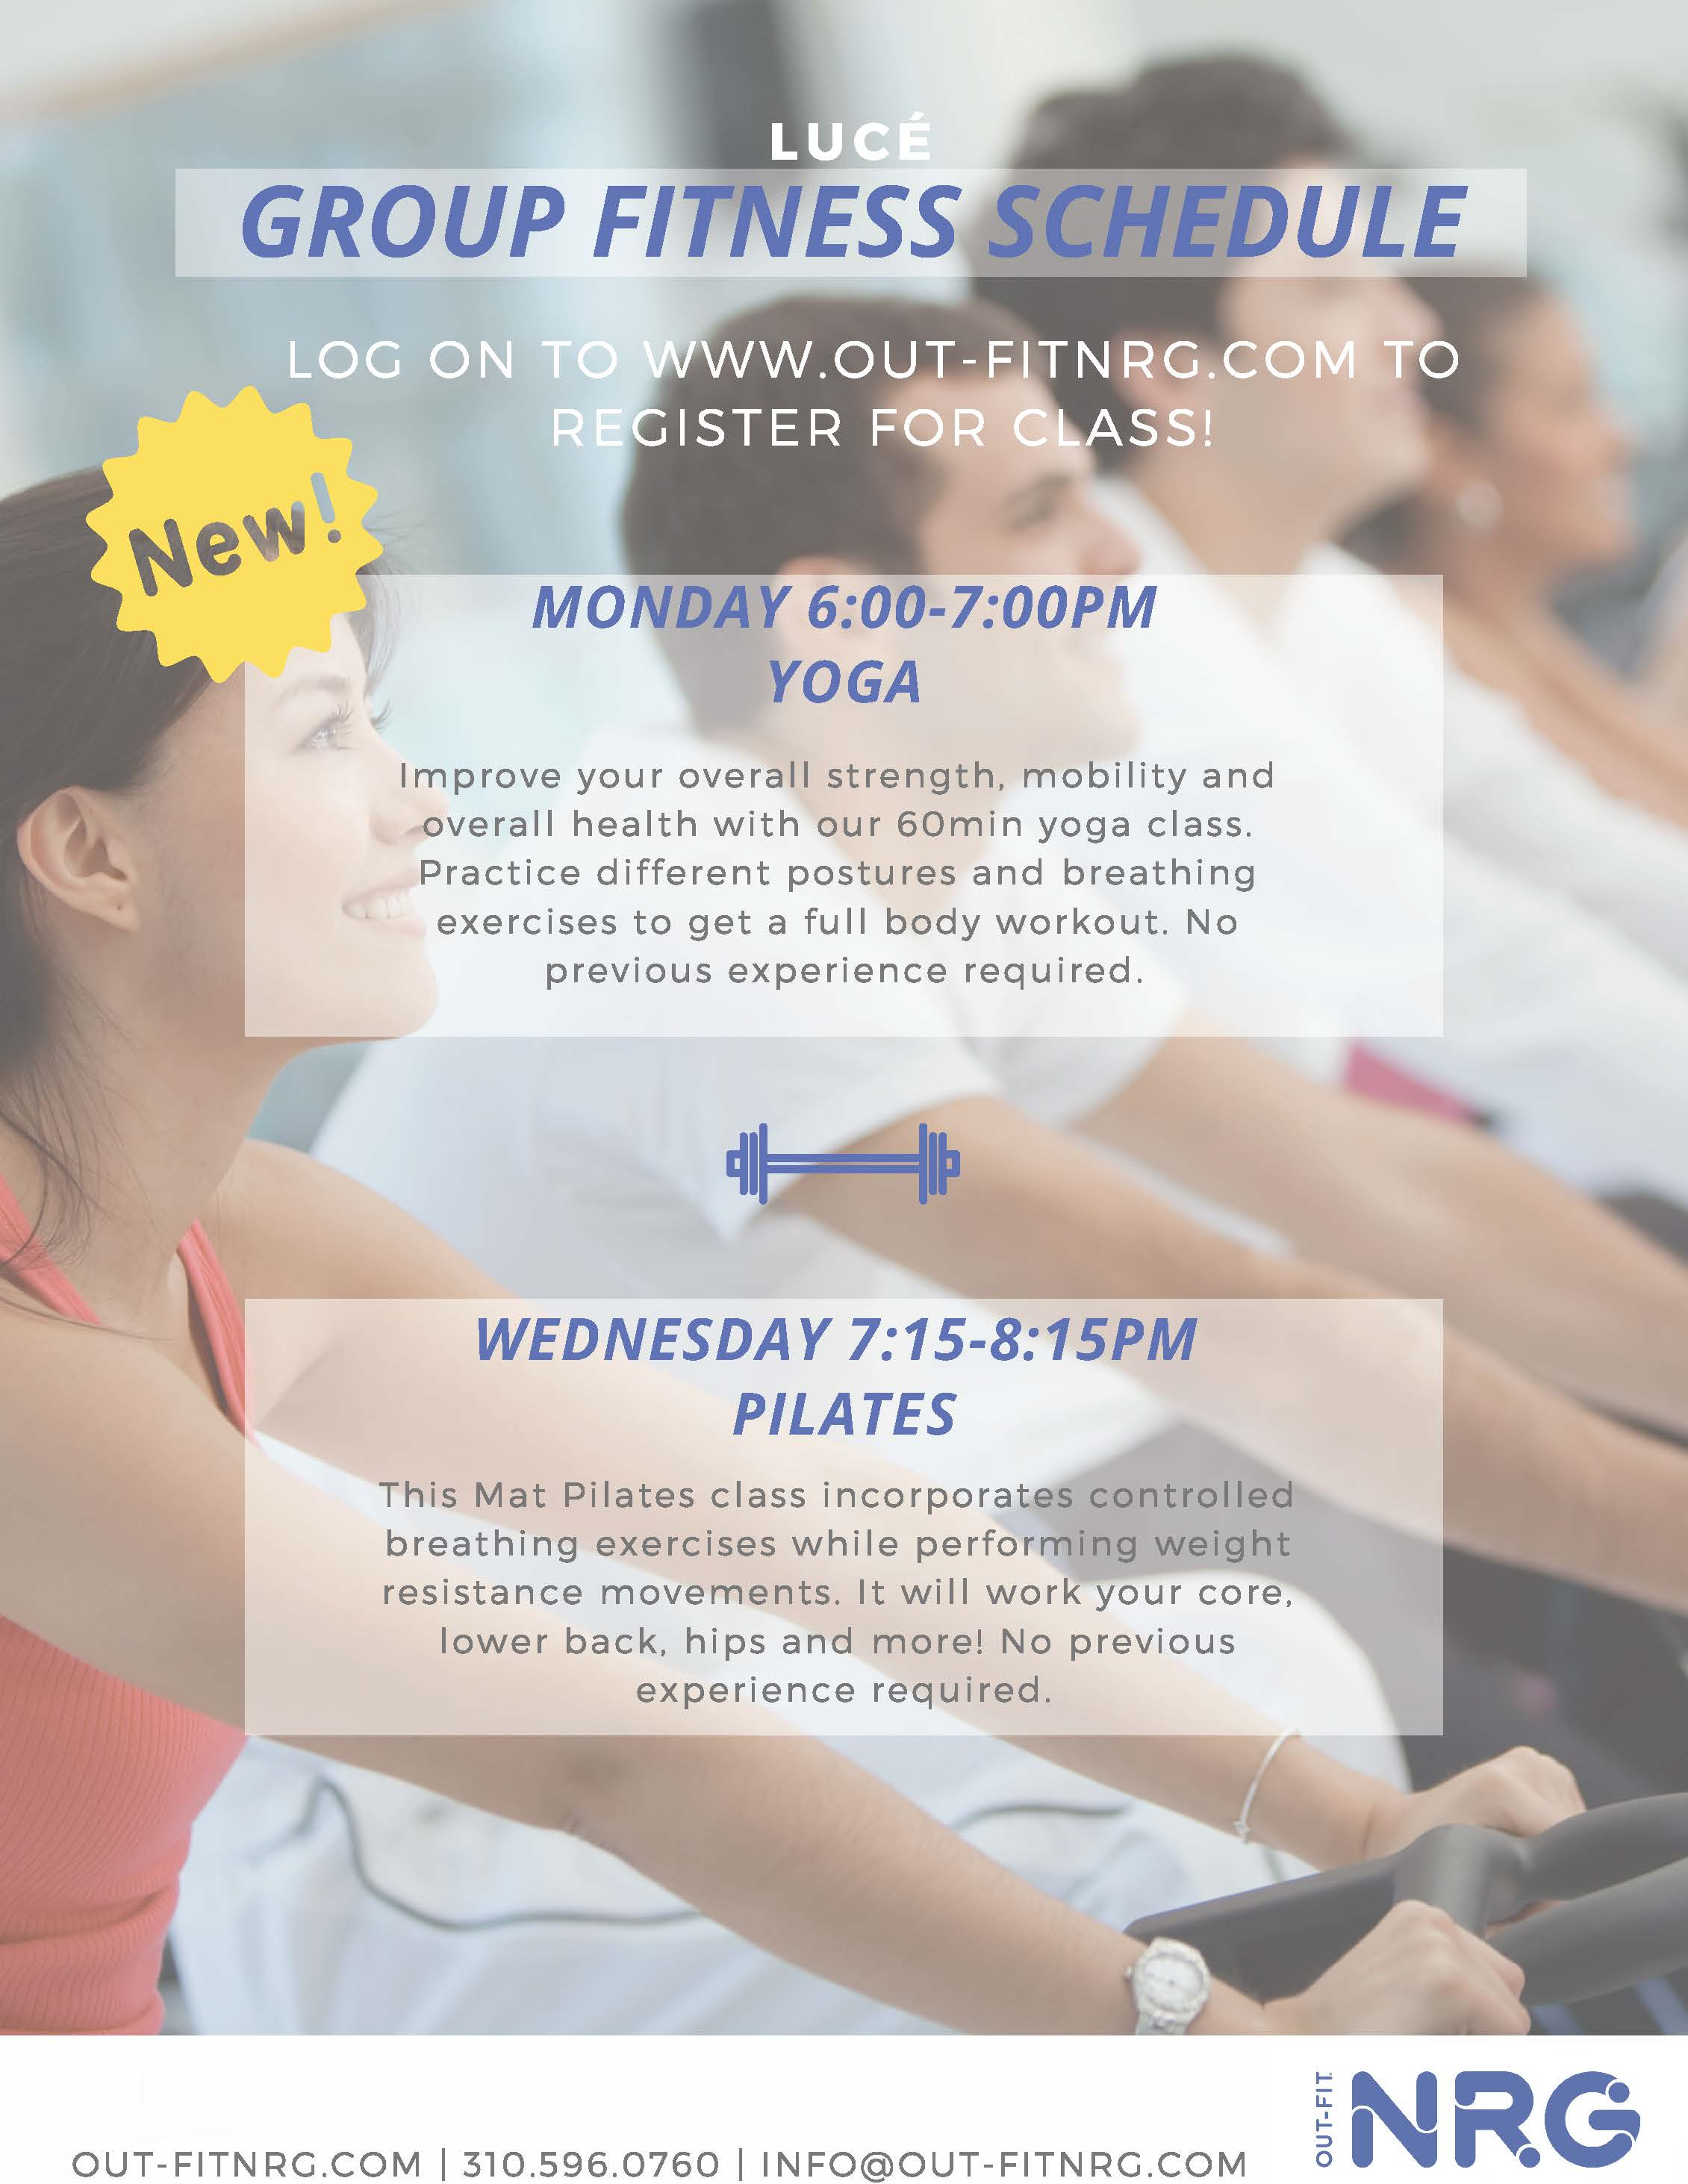 Register for classes today! - Are you a Lucé resident? Click below to book your next class!